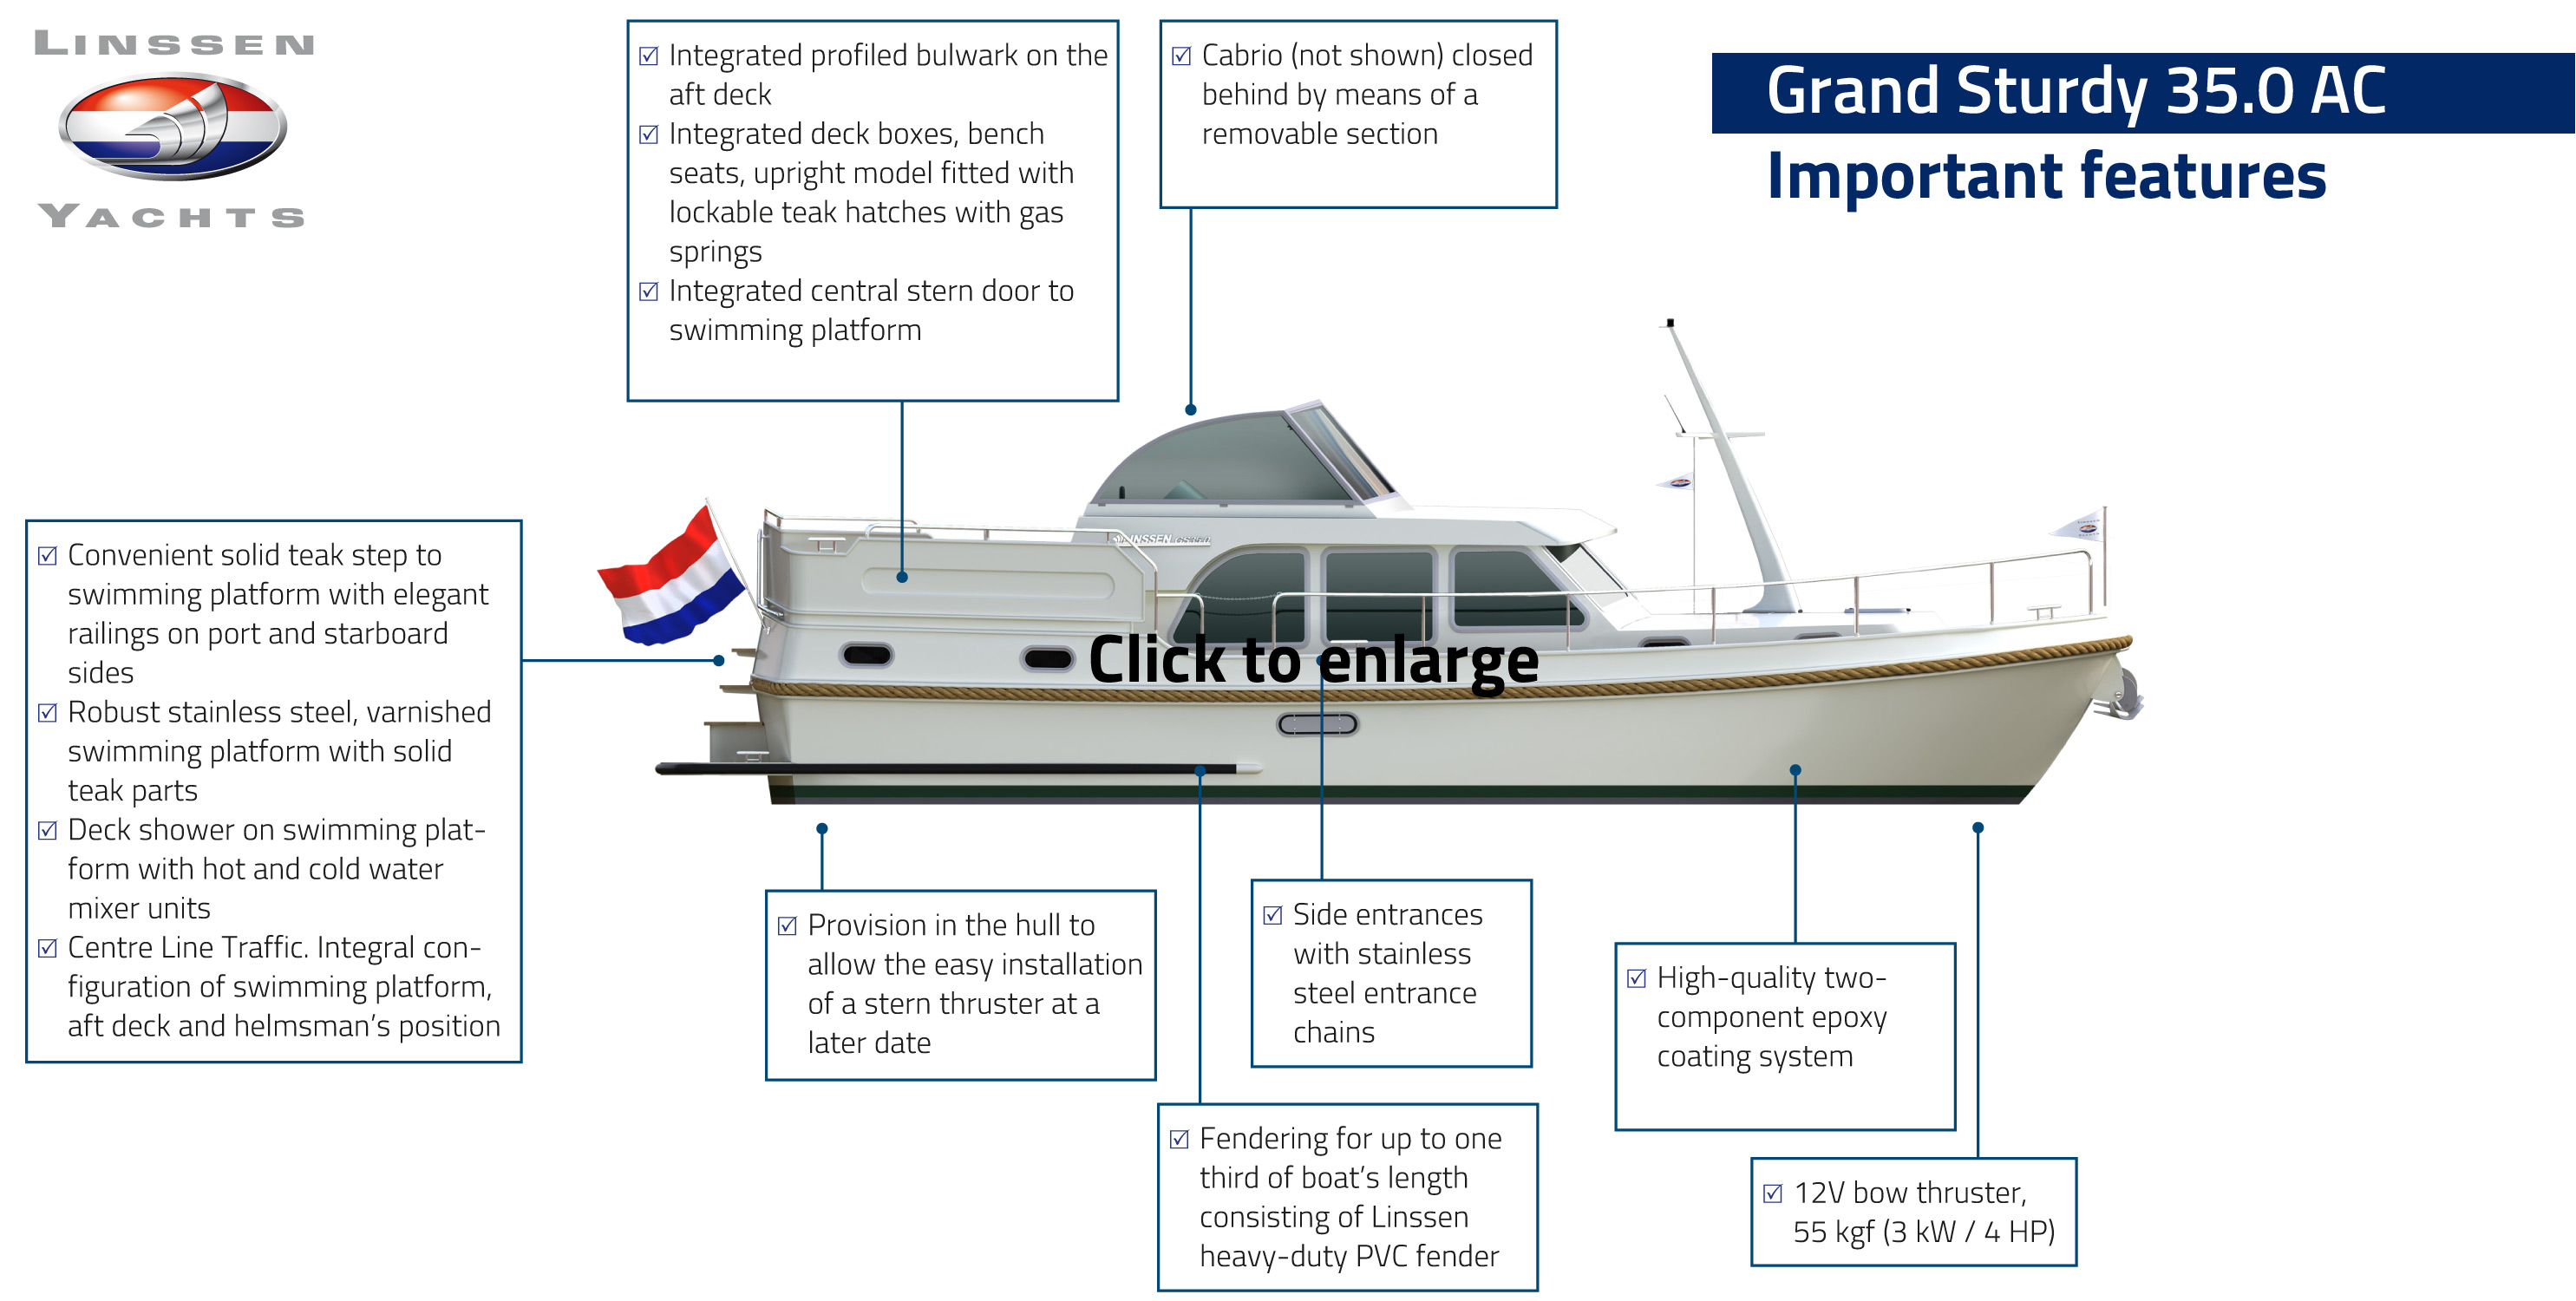 Important features of the Grand Sturdy 35.0 AC